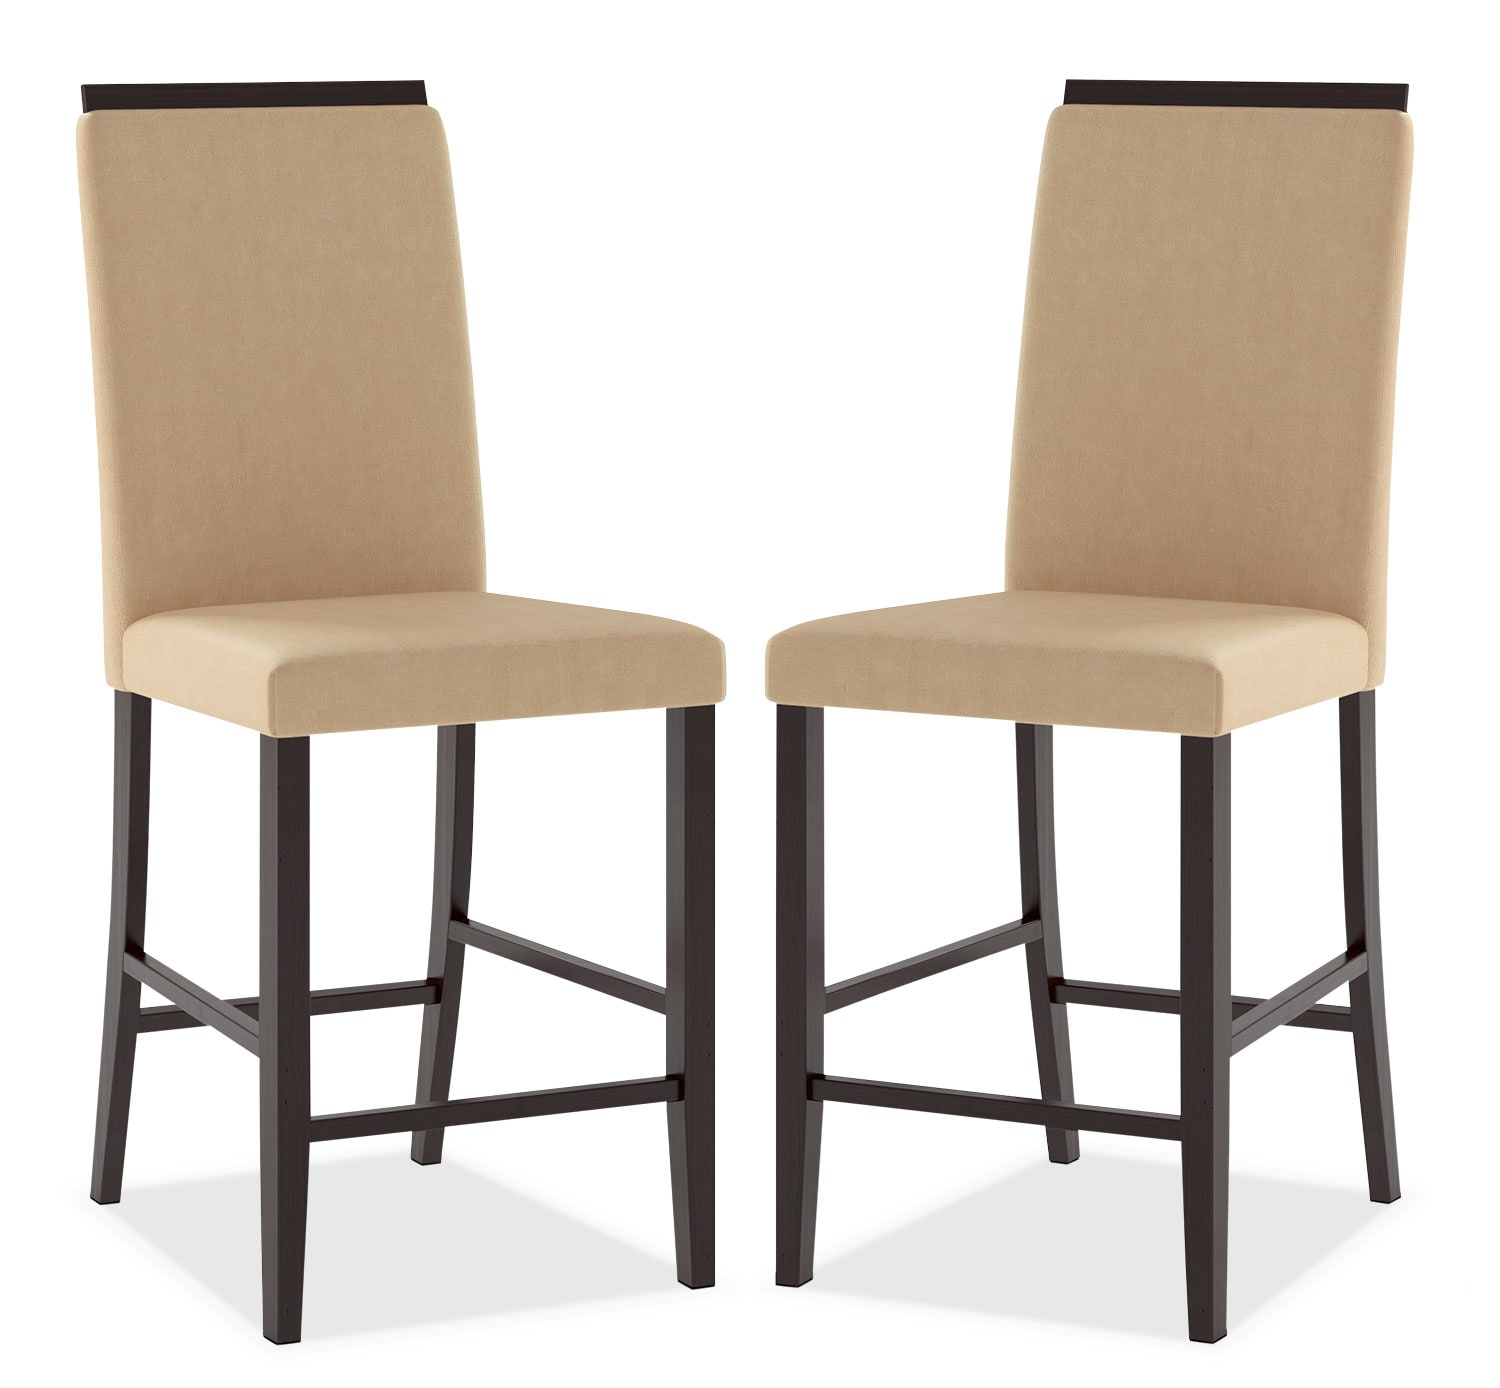 Bistro Counter-Height Dining Chair with Capped Backrest, Set of 2 – Desert Sand